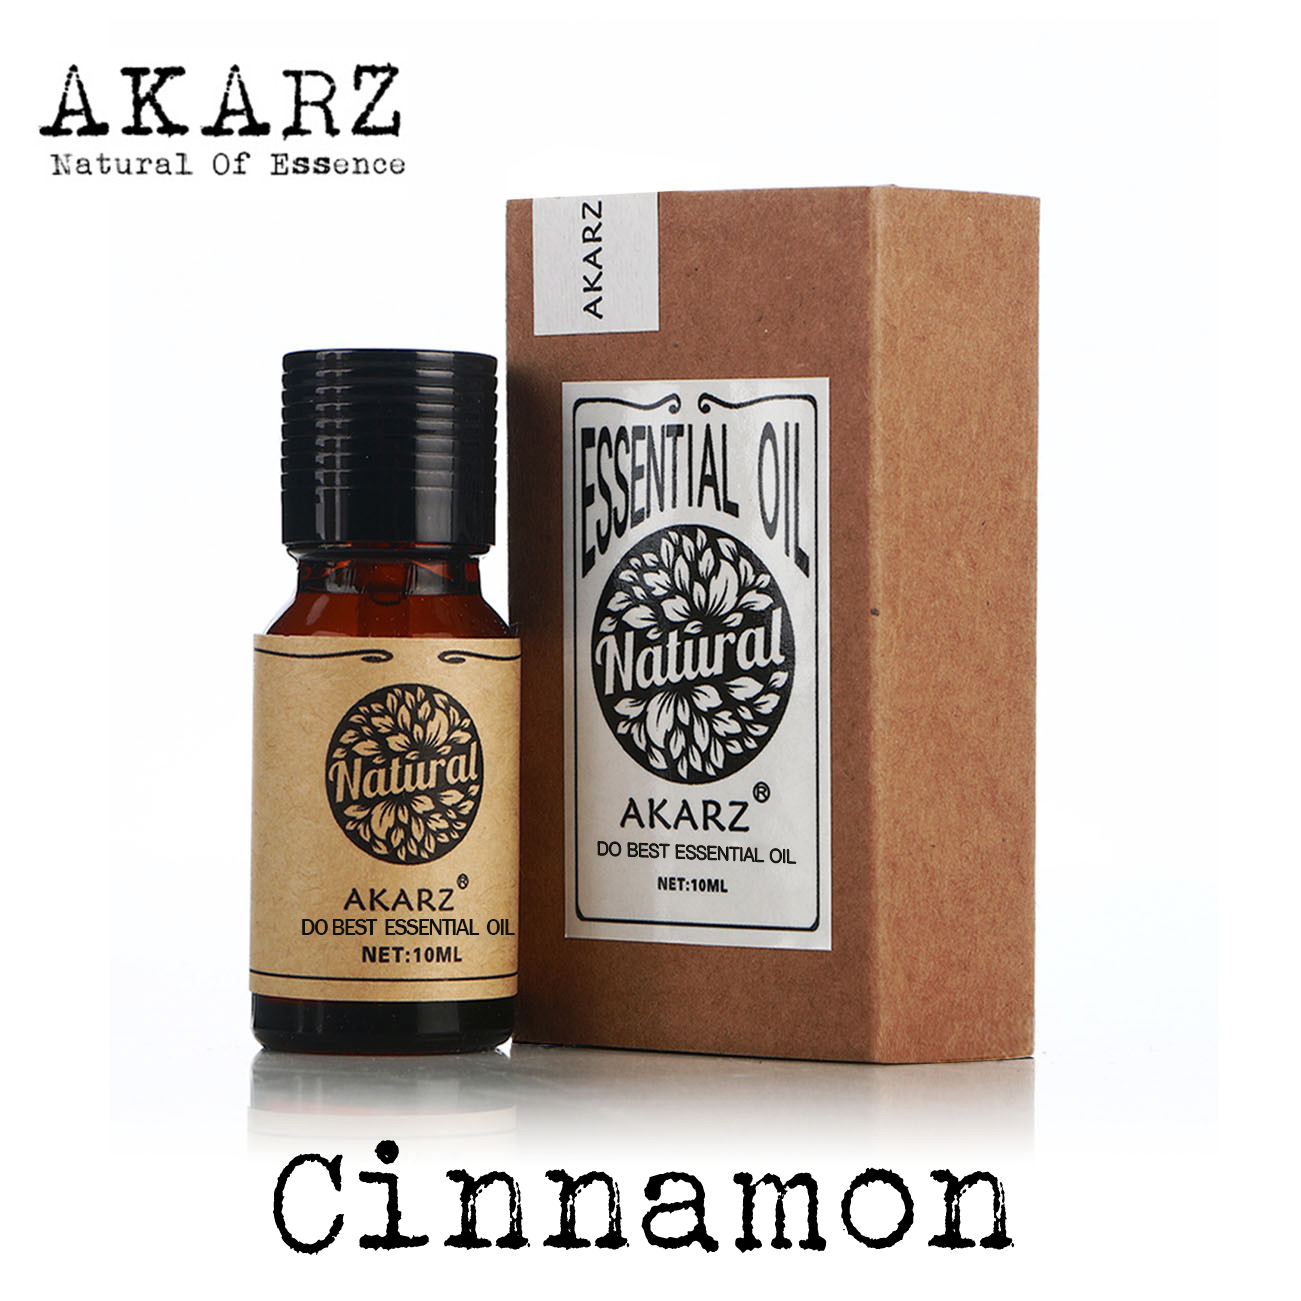 AKARZ Famous brand natural aromatherapy cinnamon oil essential oil Tighten skin Soothe digestive tract cinnamon Essential oil пеги для самоката apex bowie pegs raw